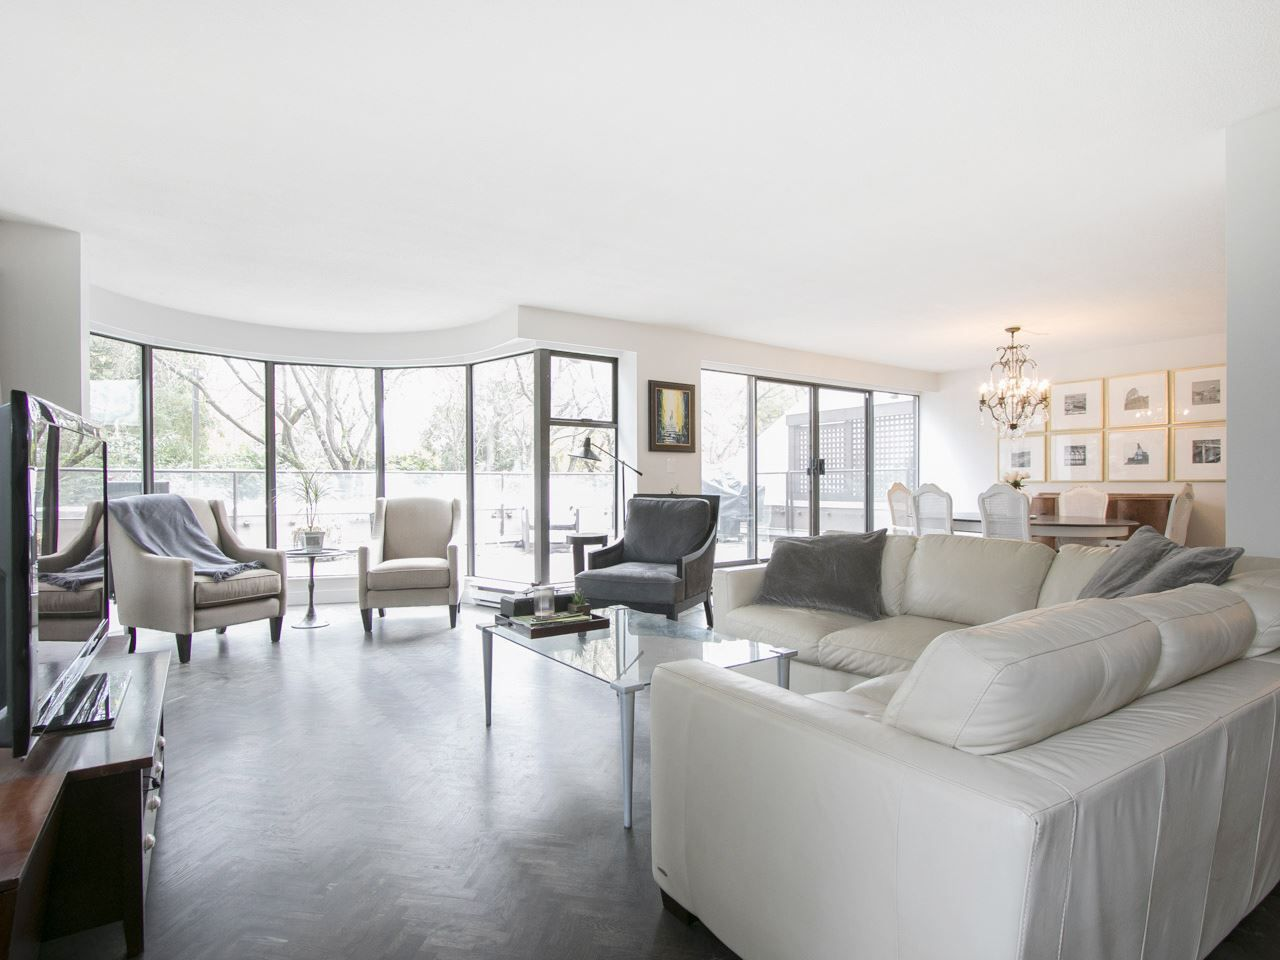 """Main Photo: 24 1425 LAMEY'S MILL Road in Vancouver: False Creek Condo for sale in """"HARBOUR TERRACE"""" (Vancouver West)  : MLS®# R2137664"""